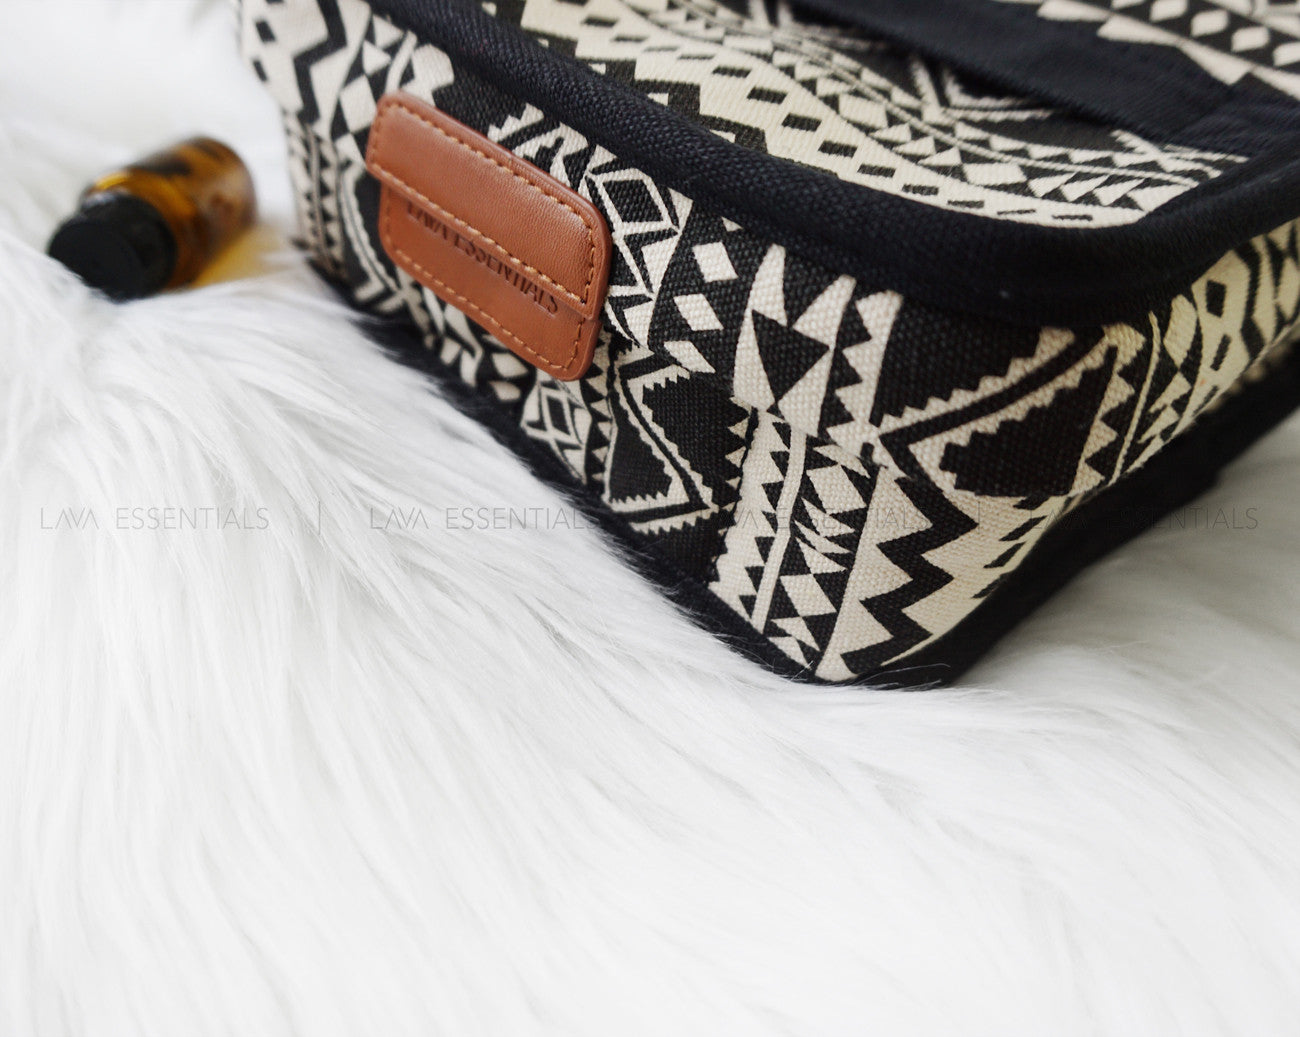 Boho Carrying Case for Essential Oils *New Mesh Pocket* 30+ bottles 5ml-15ml - Lava Essential Oils